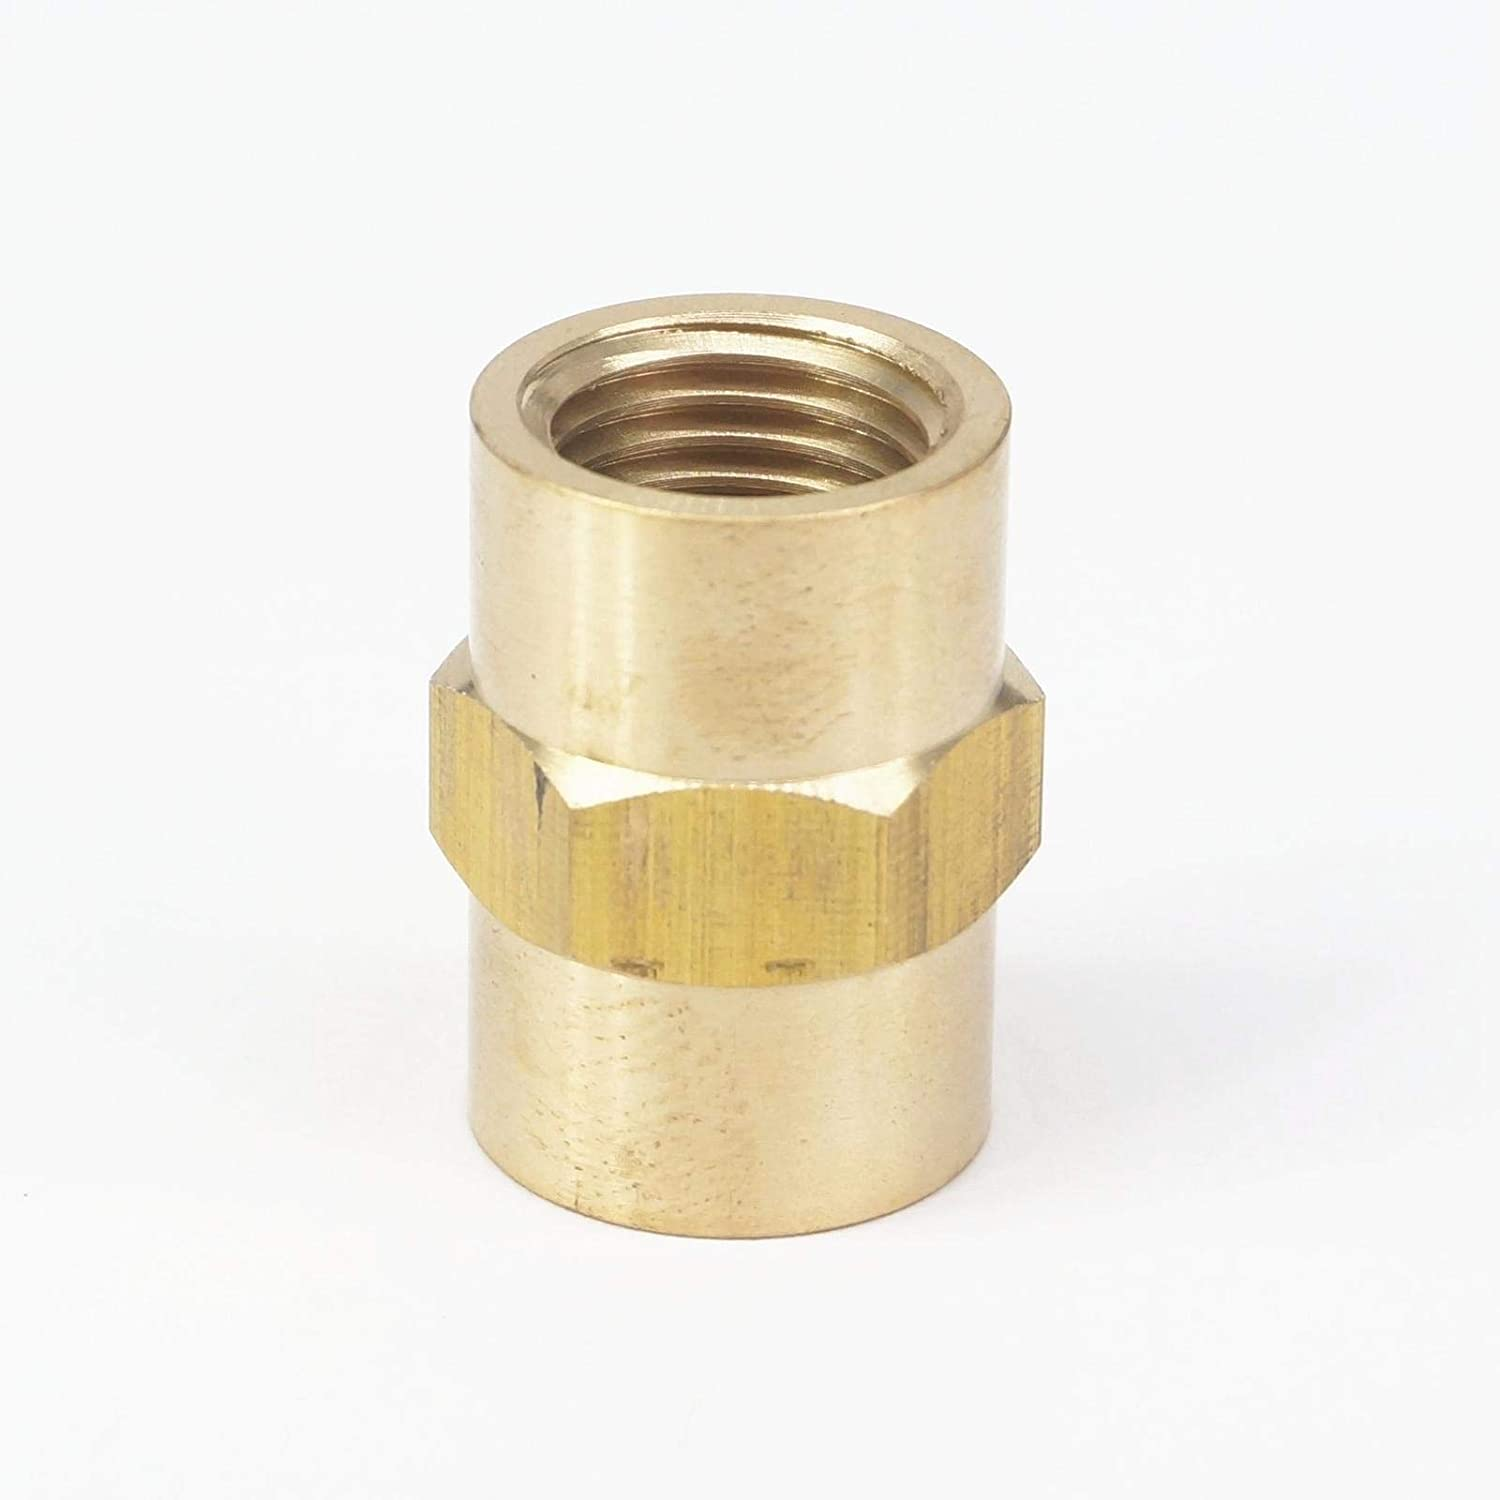 Xucus 1//4 BSPT x 1//4 NPT Female Hex Nipple Reducer Brass Pipe Fitting Connector Adapter Water Gas Fuel Max Pressure 229 PSI